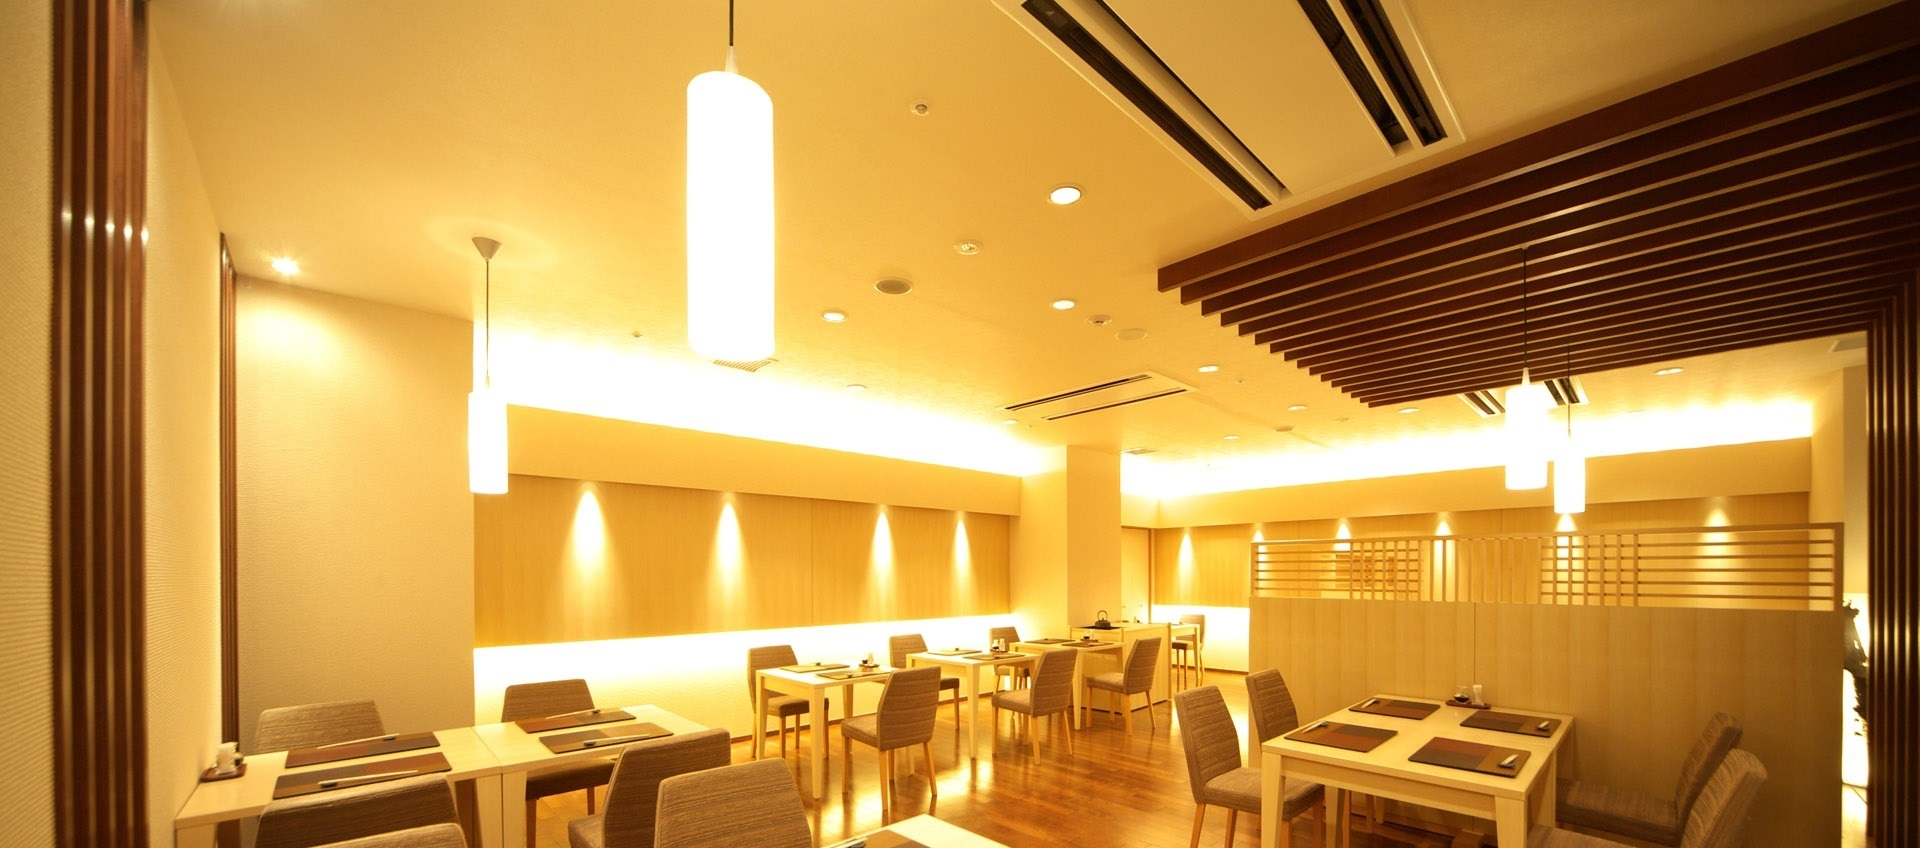 cafe_chairs_tables_lighting_room_39239_1920x1080